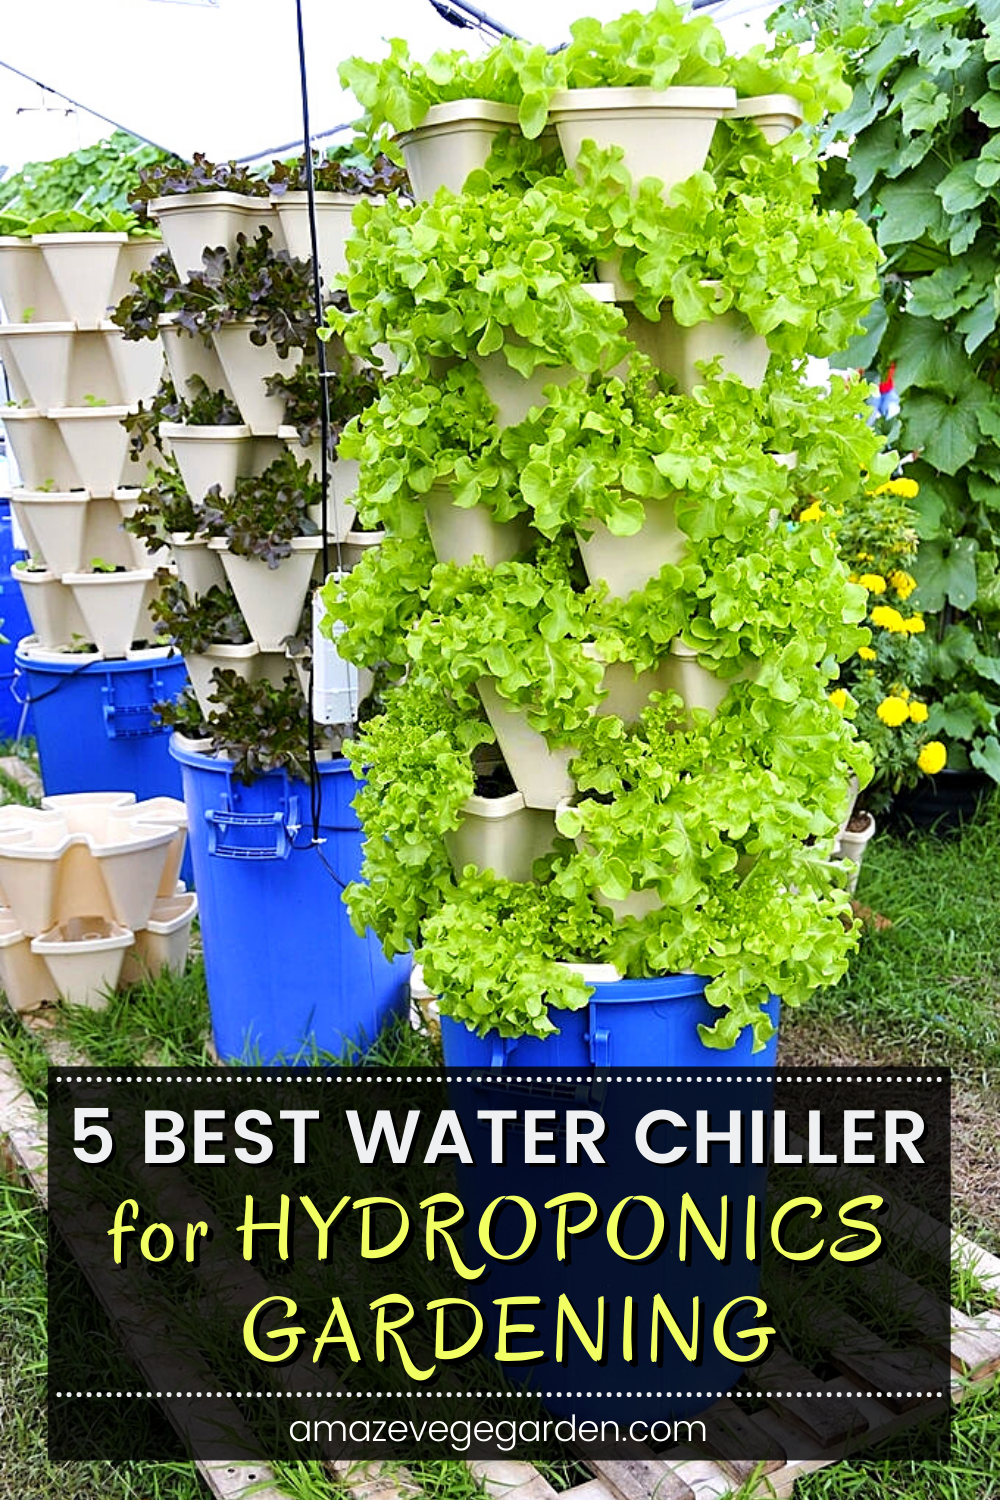 There is 5 best water chiller you can consider to control your hydroponic gardening temperatures. We do not want warm temperatures because warm temperatures will increase the chances of bacterial growth which will cause root rot and other problems. So keeping your water temperature under control might be one of the simplest things you can do.